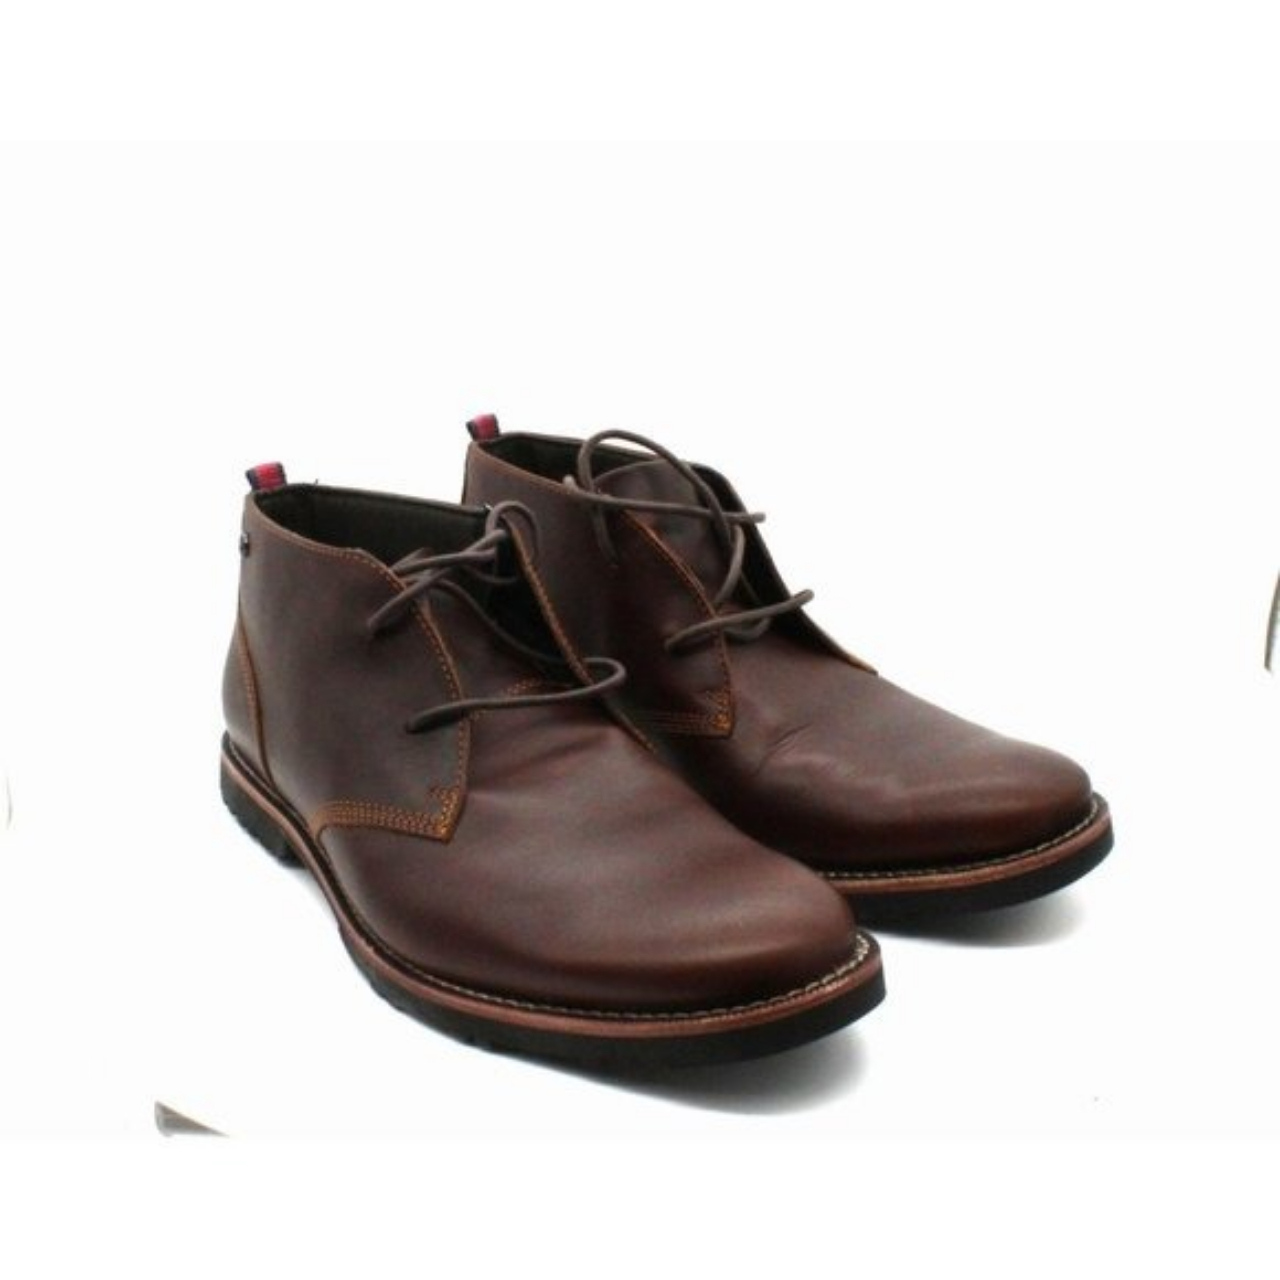 Product Image 1 - Timberland Men's Richdale Leather Chukka